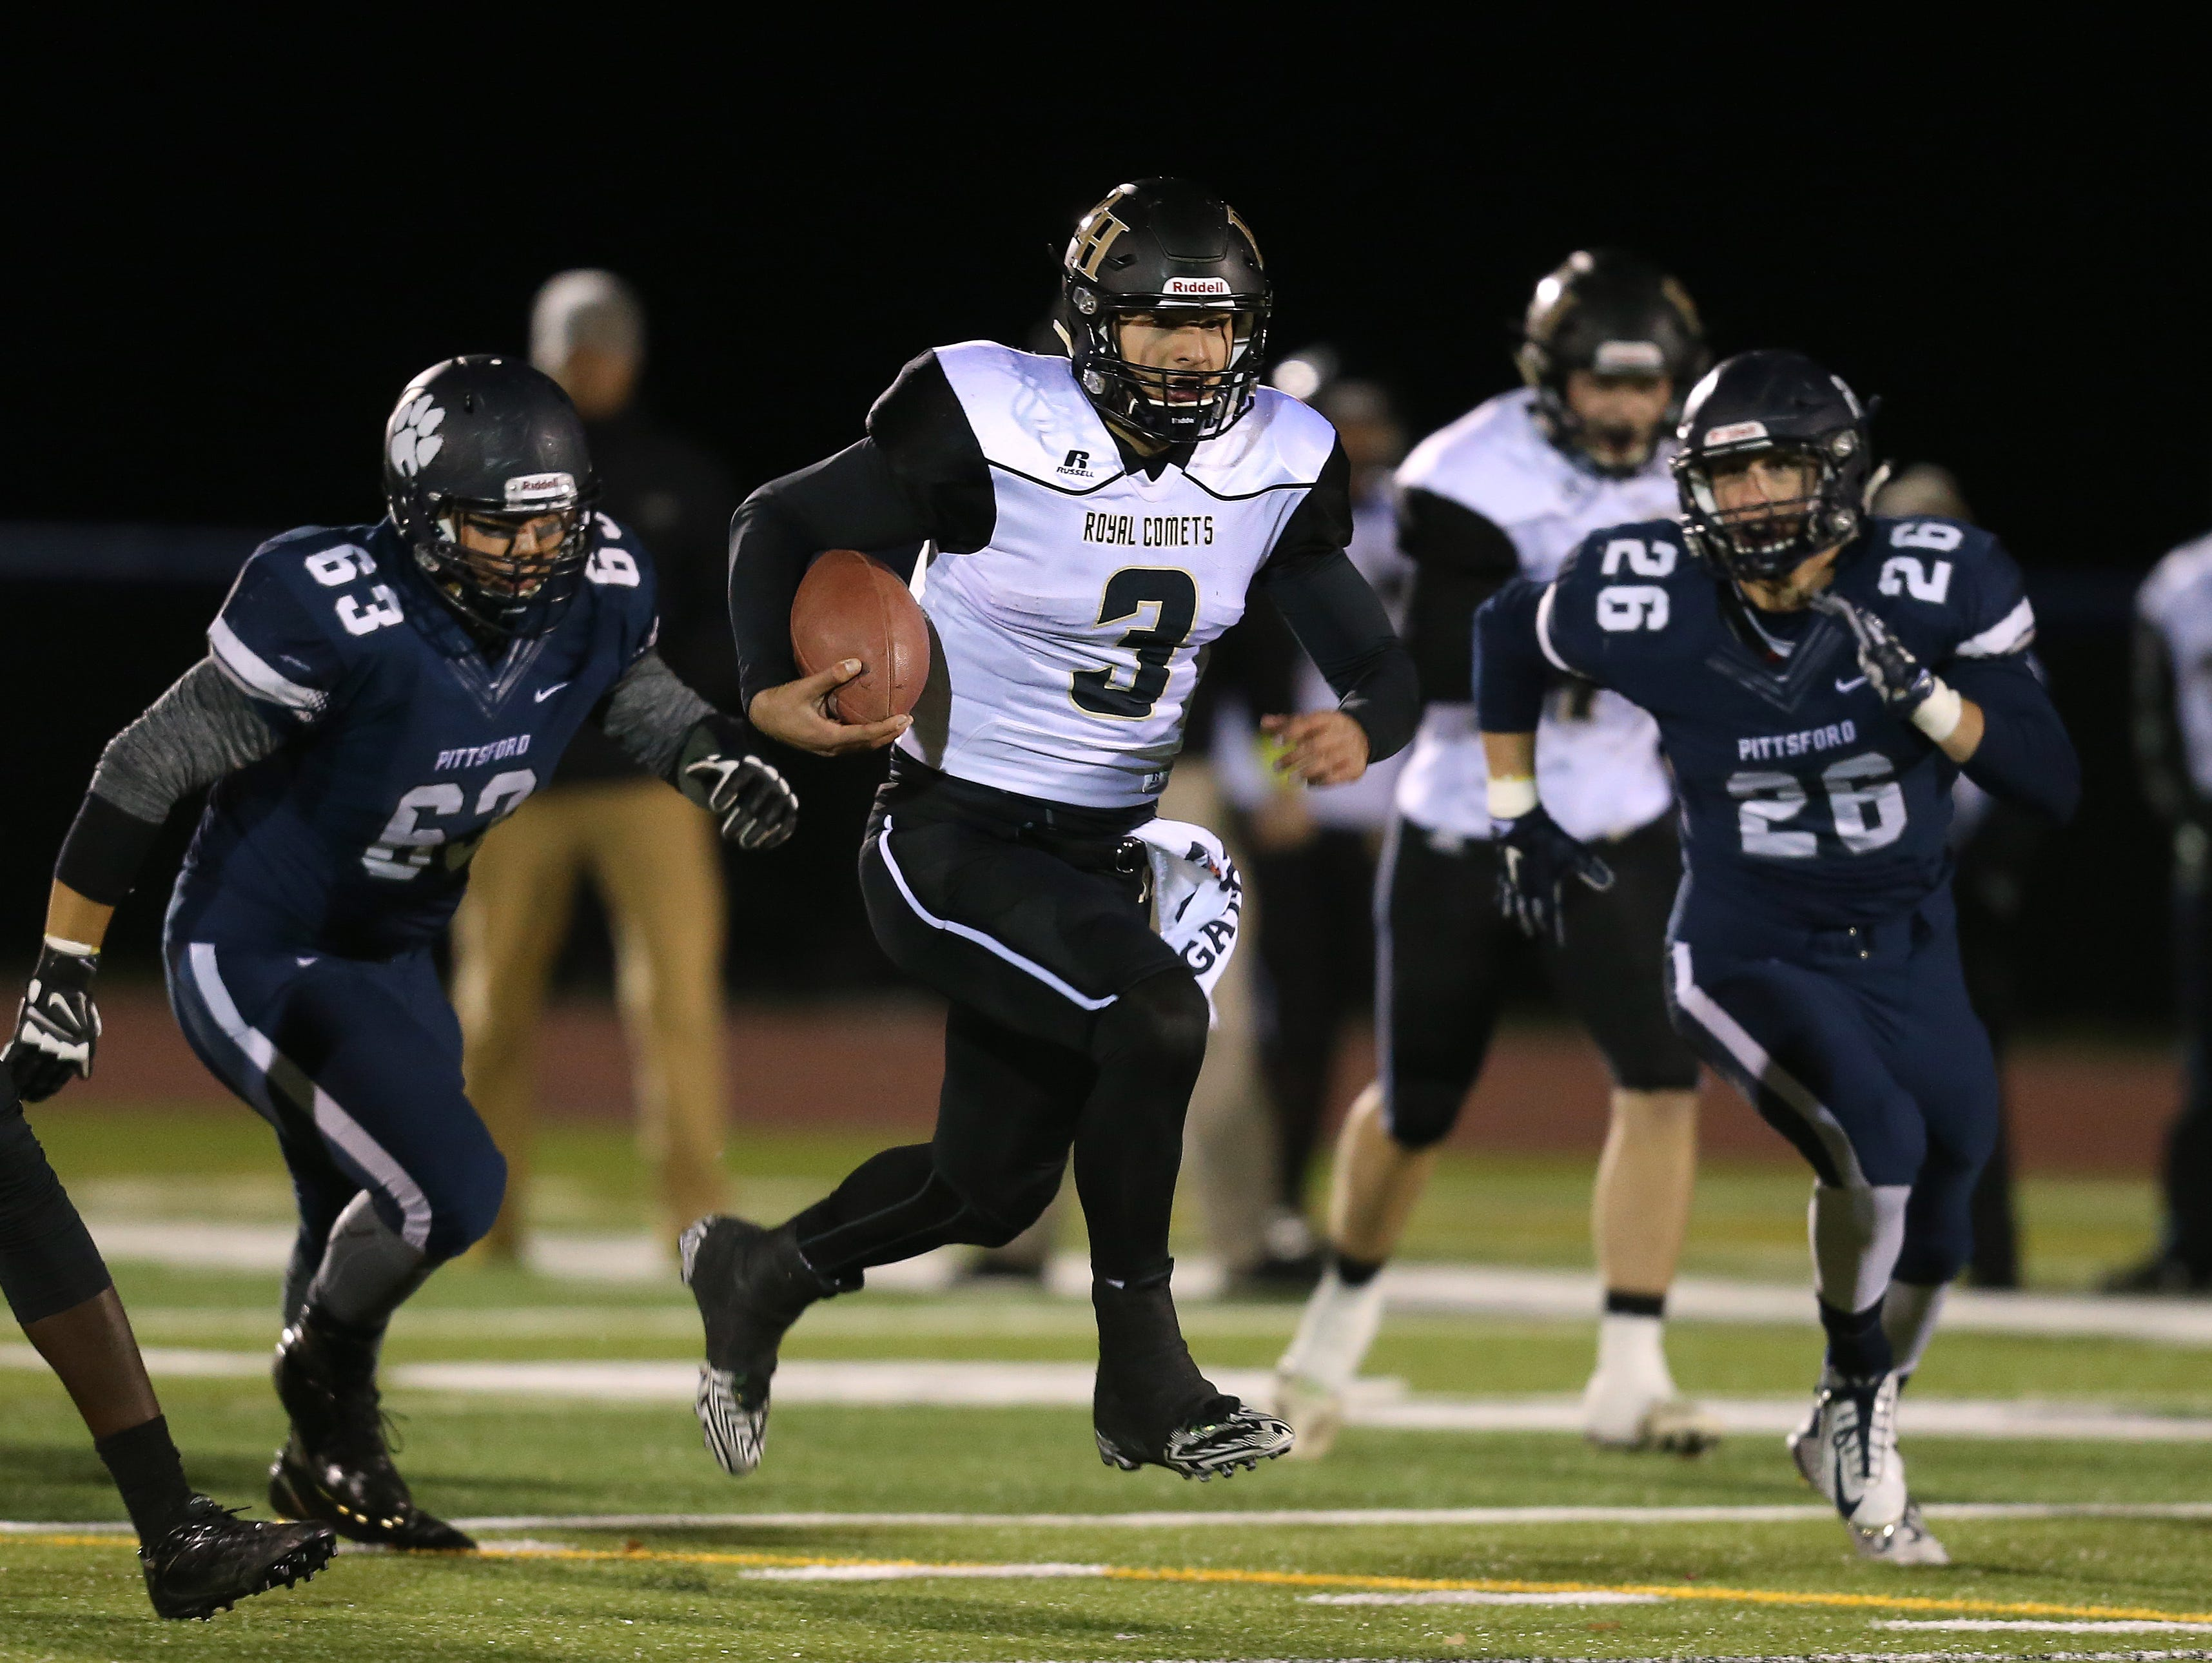 Rush-Henrietta quarterback Jared Gerbino, avoiding pressure applied by Pittsford's Jimmy Wilmett (63), helped the Royal Comets convert three third downs during the team's game-winning drive last weekend.